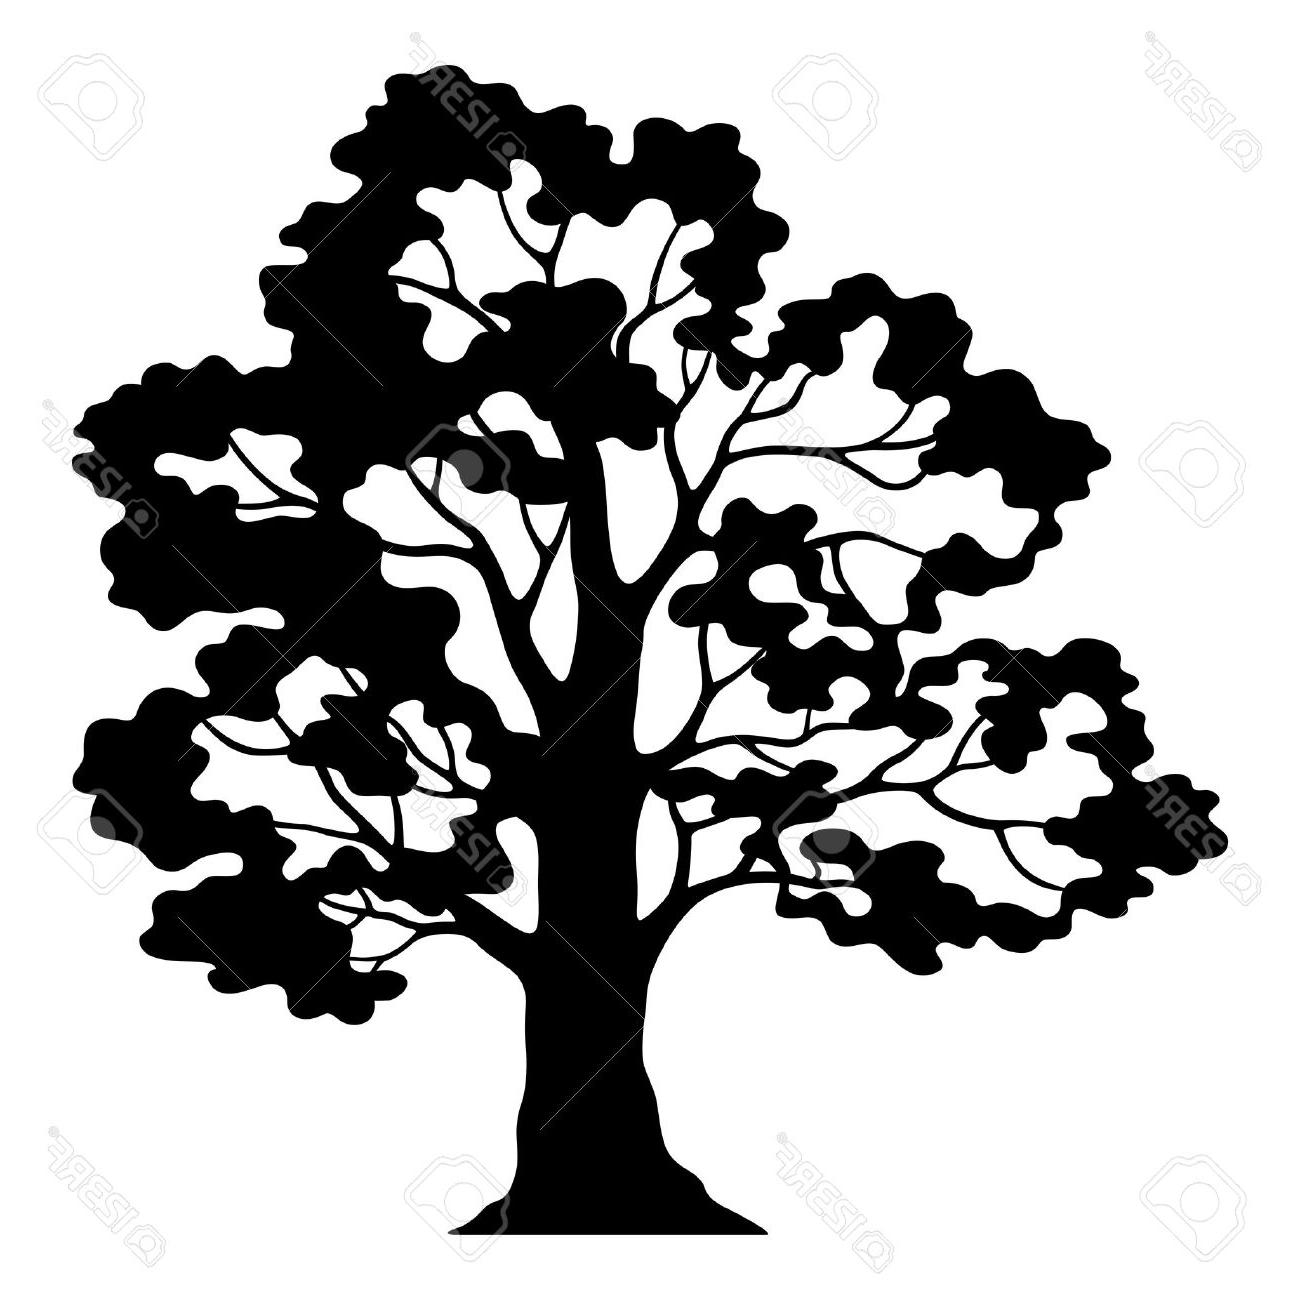 1300x1300 Hd Live Oak Tree Silhouette Clip Art Design Free Vector Art